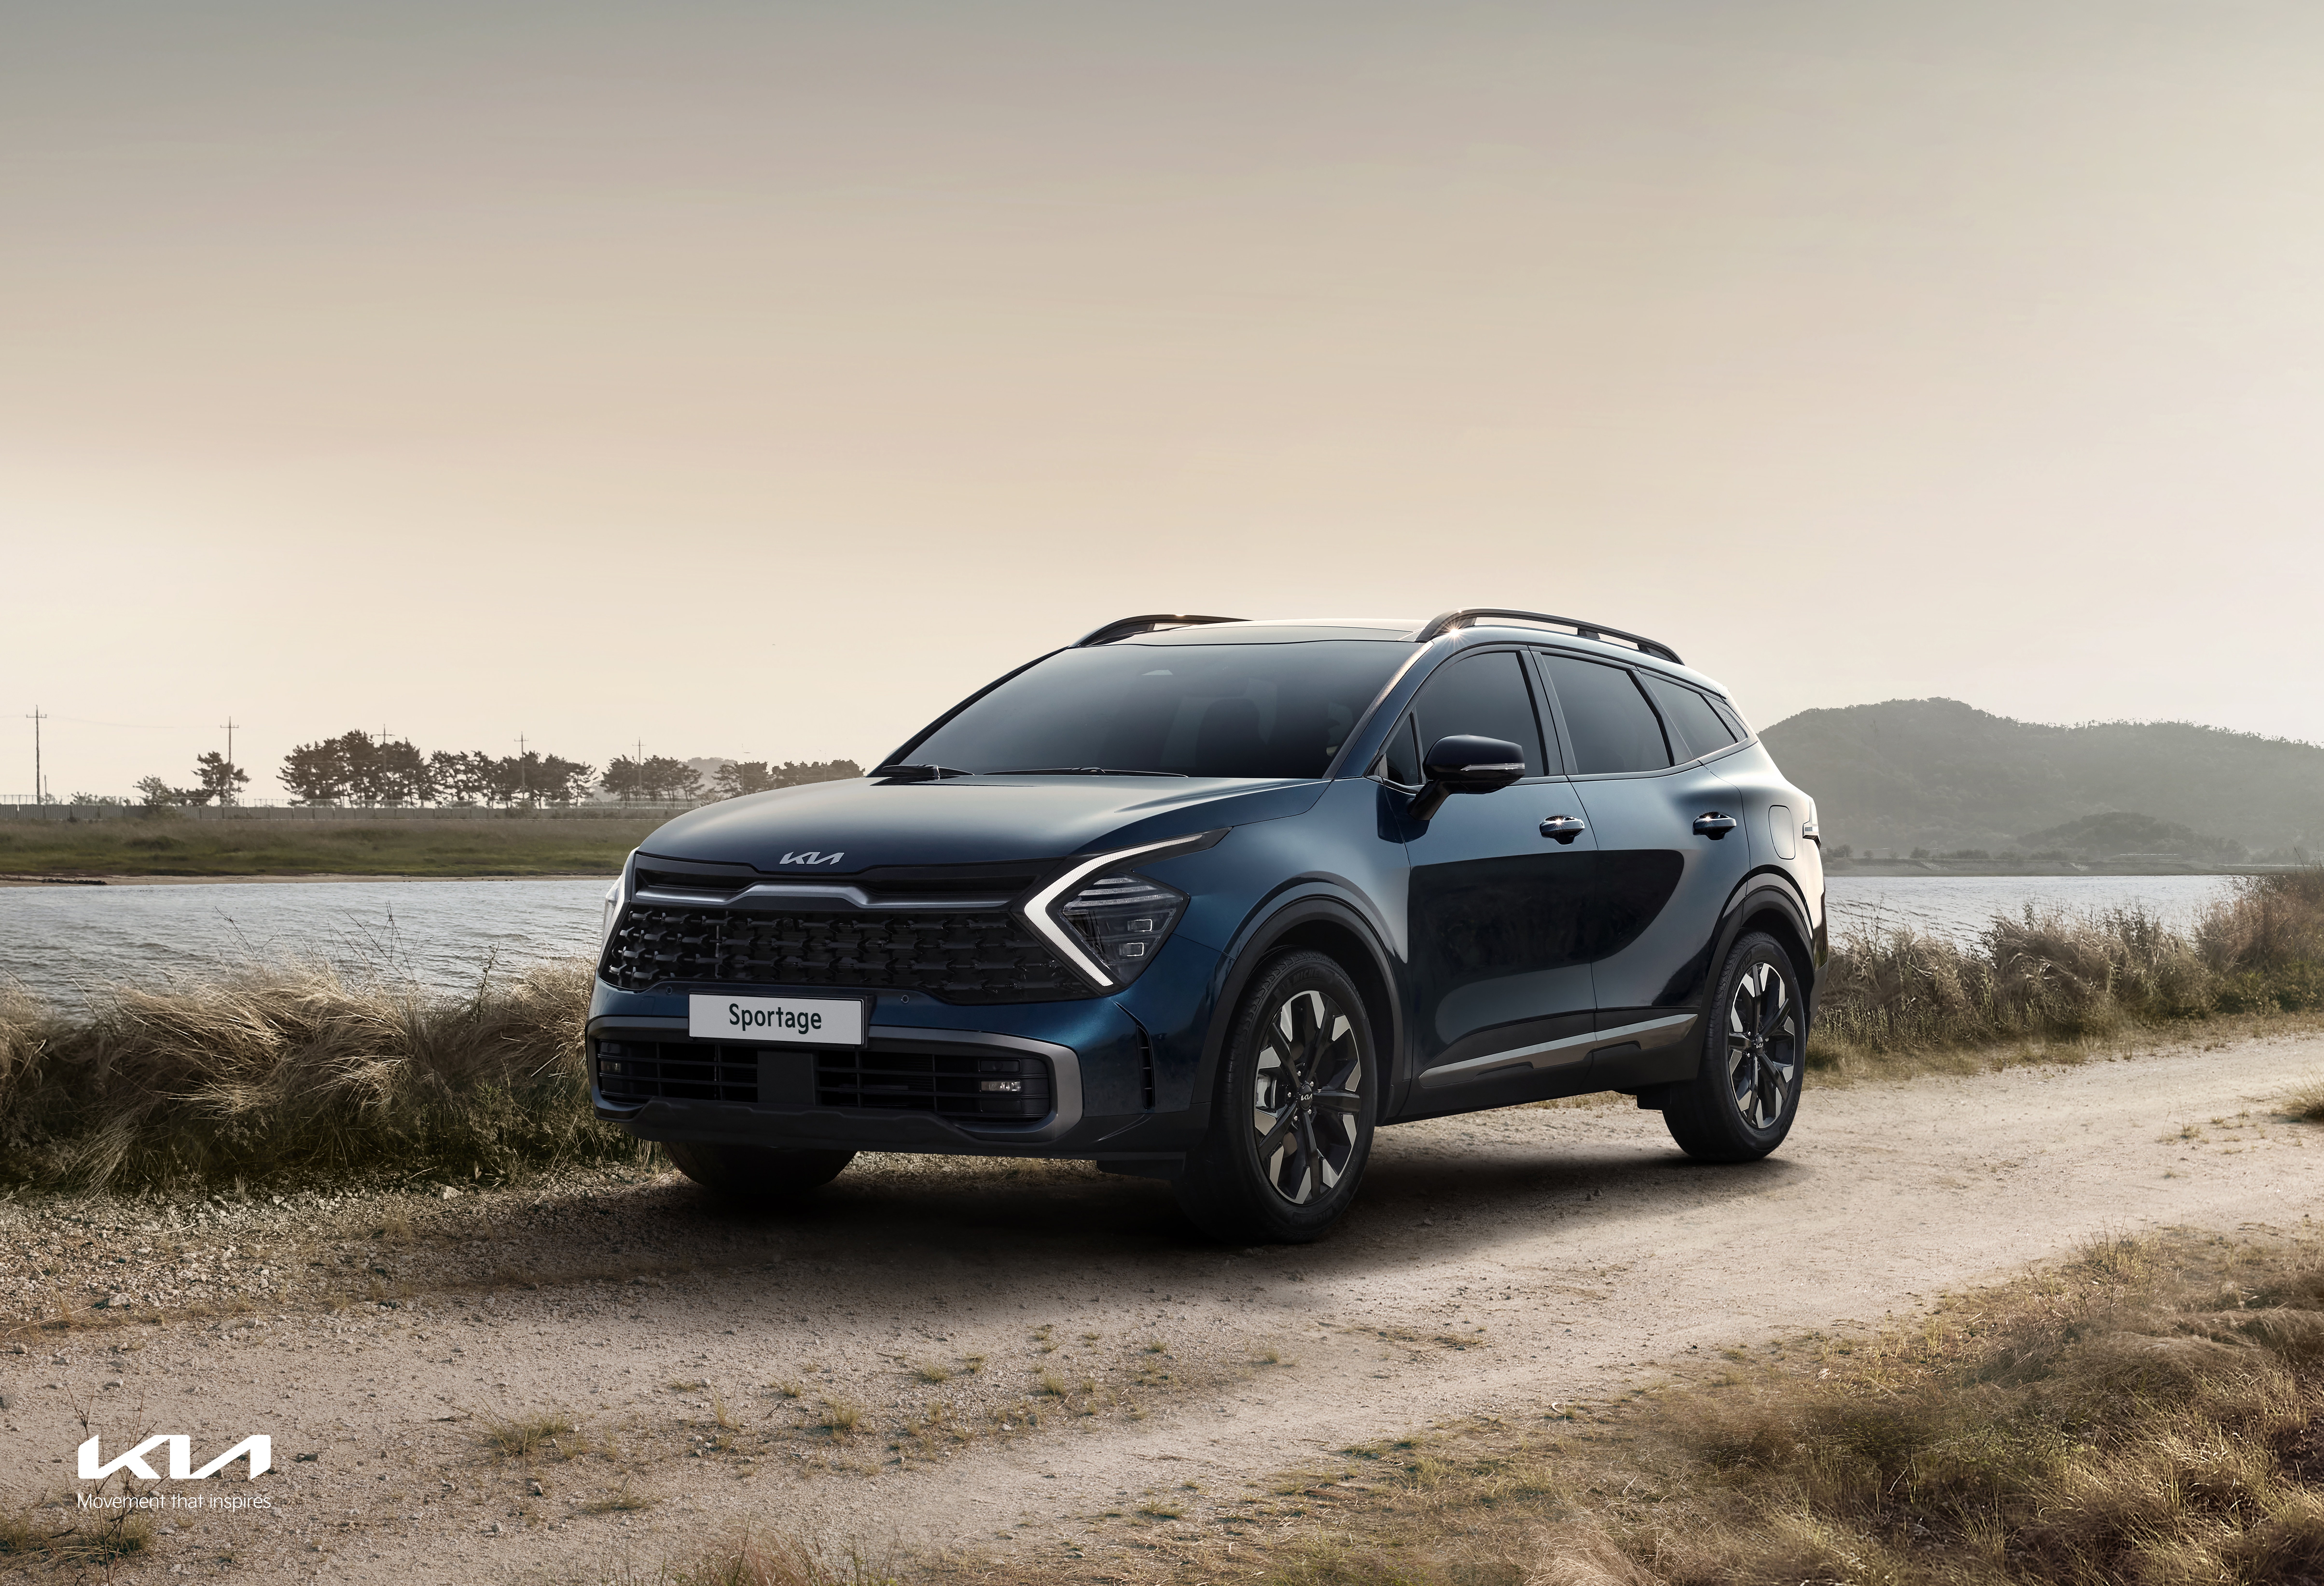 Kia's fifth-generation Sportage makes its global debut